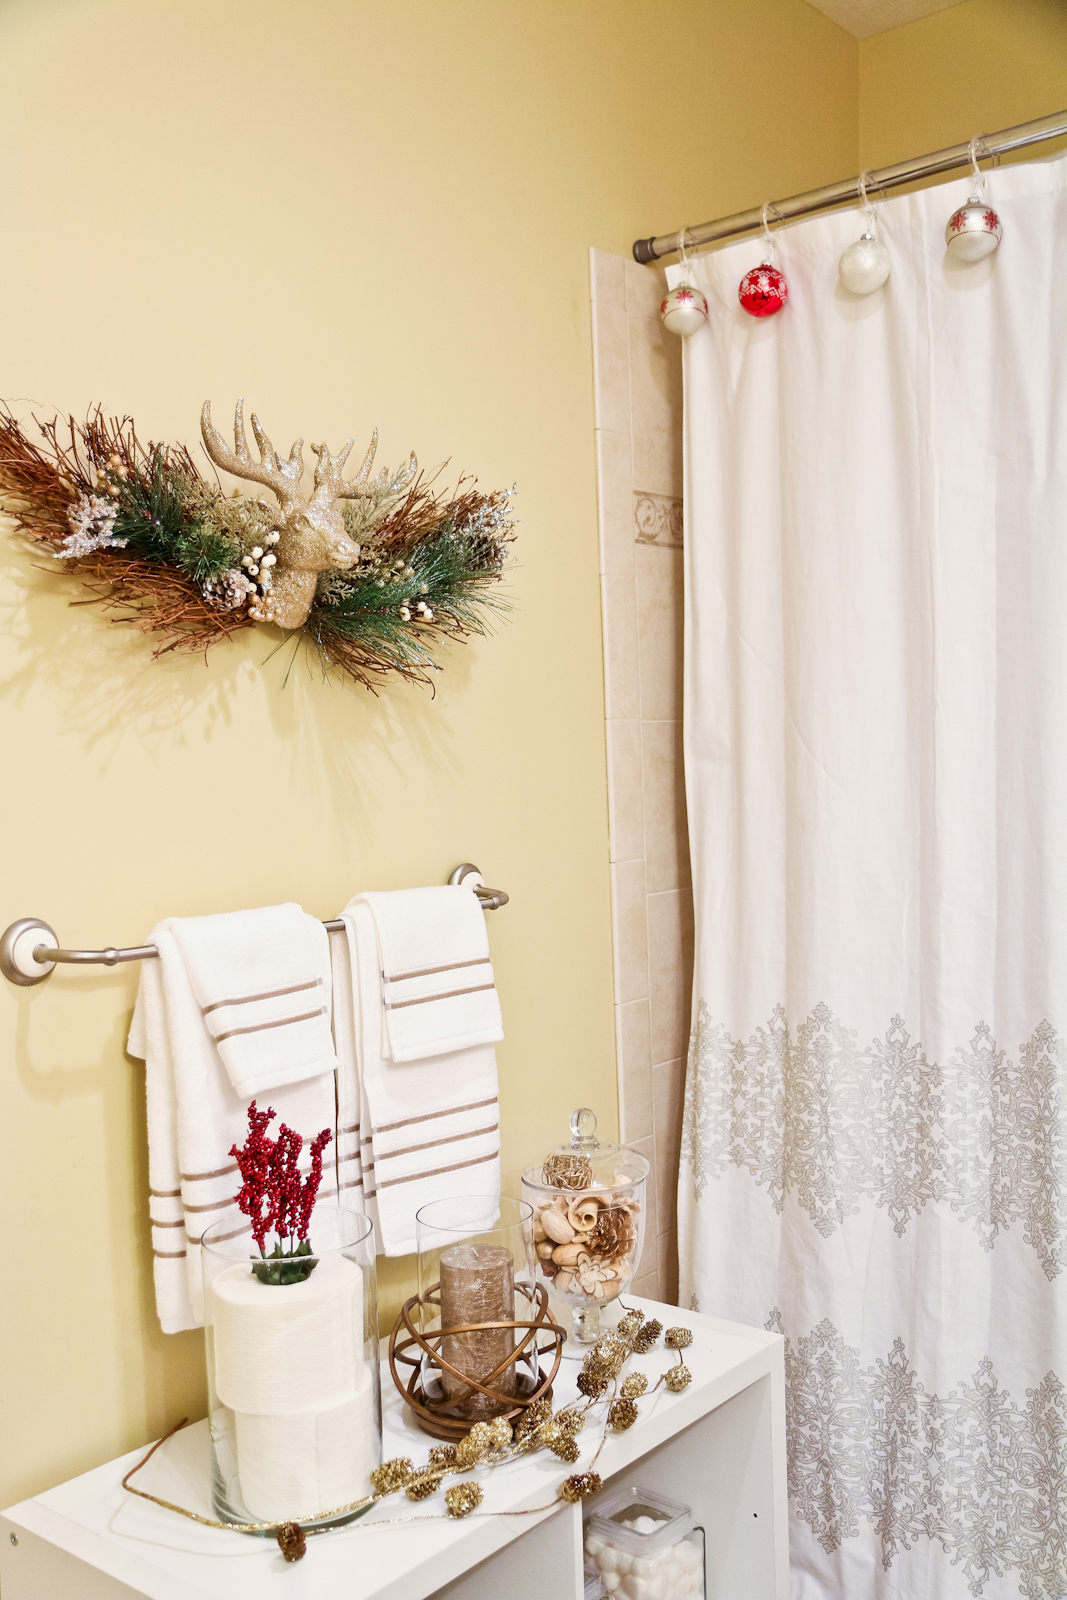 5 Tips To Prepare Your Home For Holiday Guests